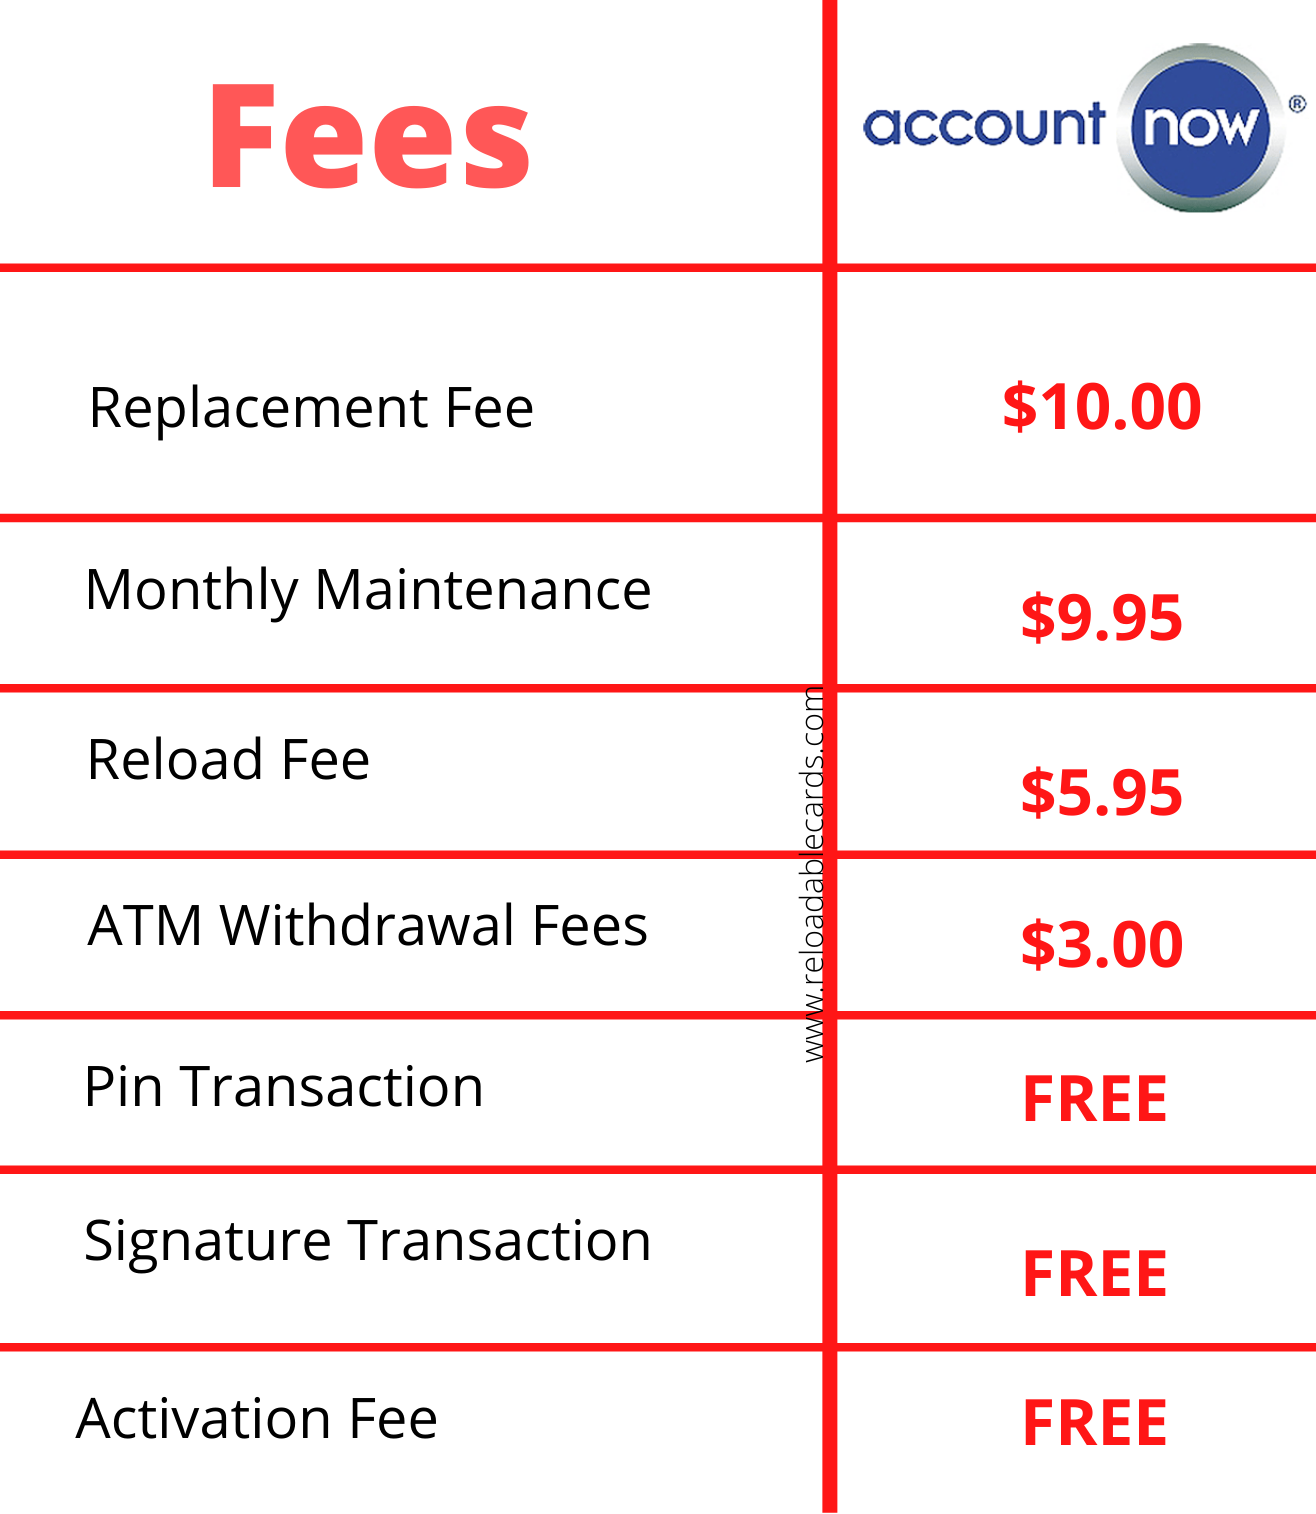 AccountNow fees